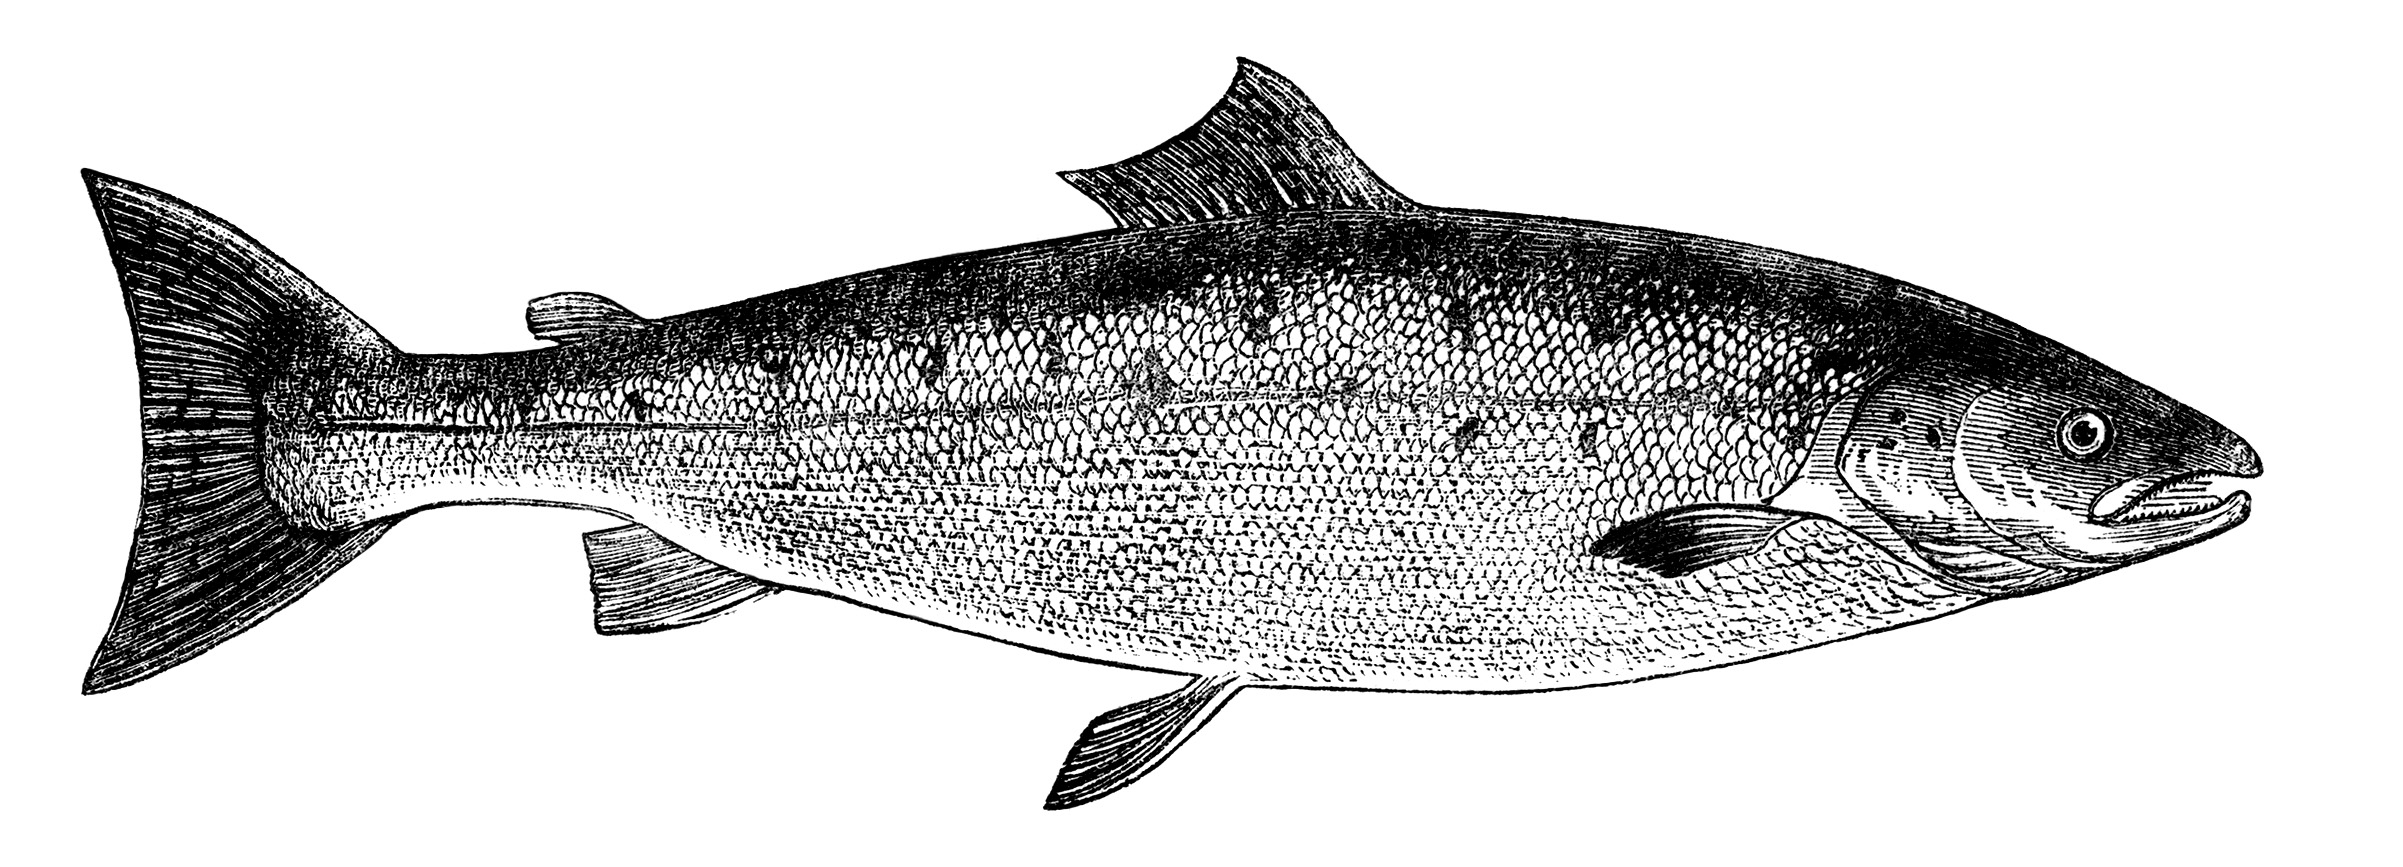 Free Vintage Fish Images ~ Salmon and Carp | Old Design ...